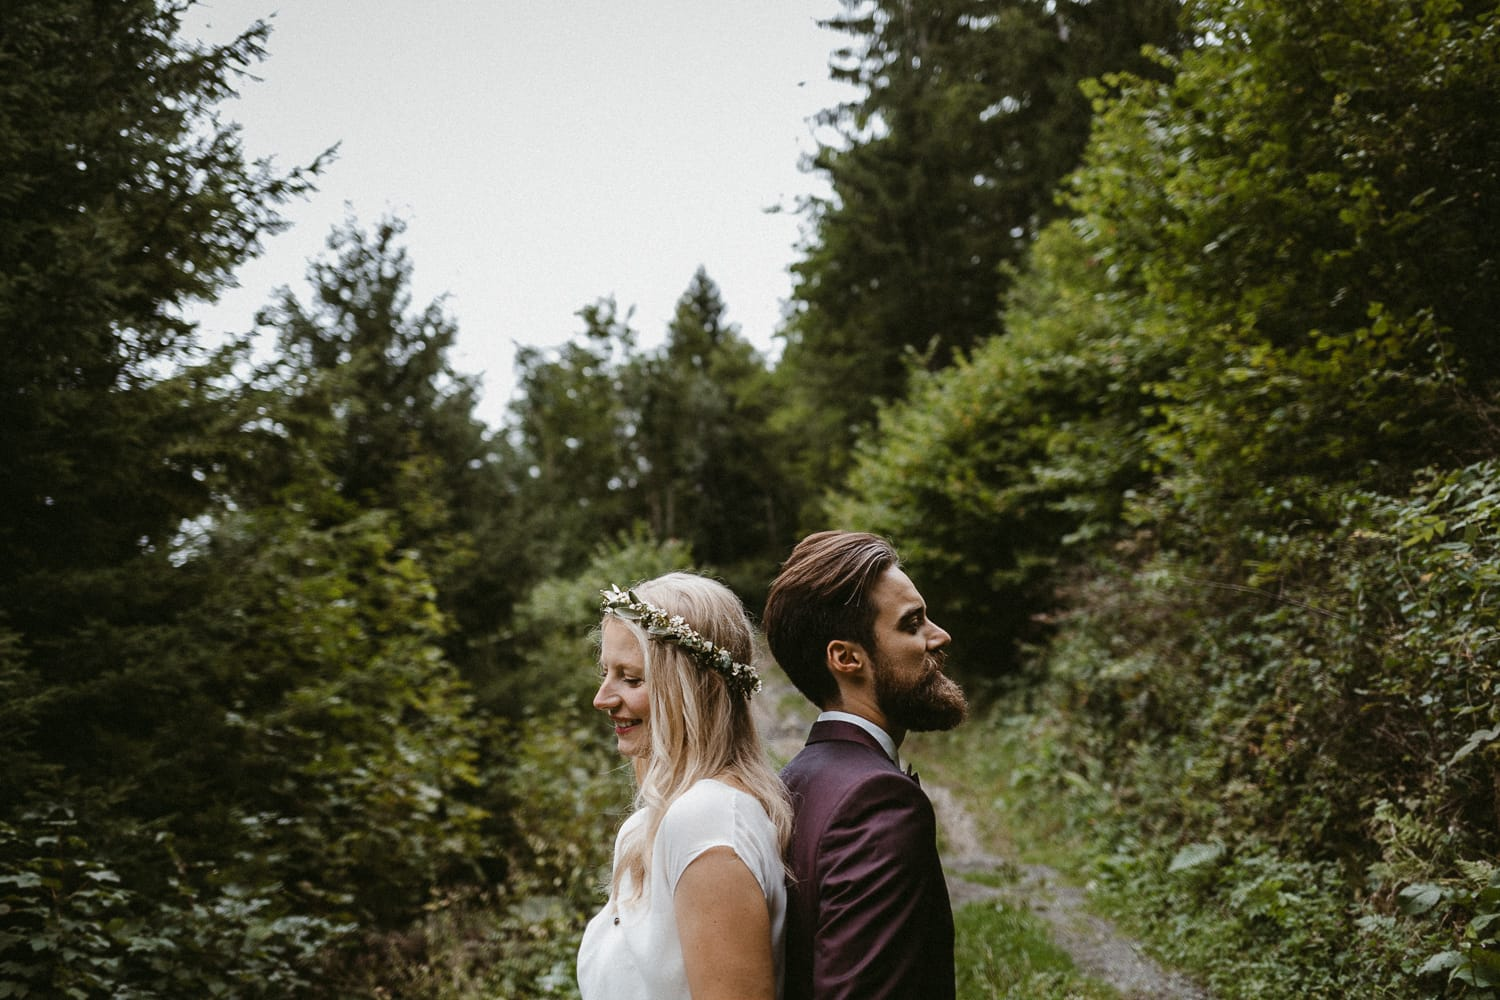 wedding-photographer-austria-mountain-wedding-alps_69_